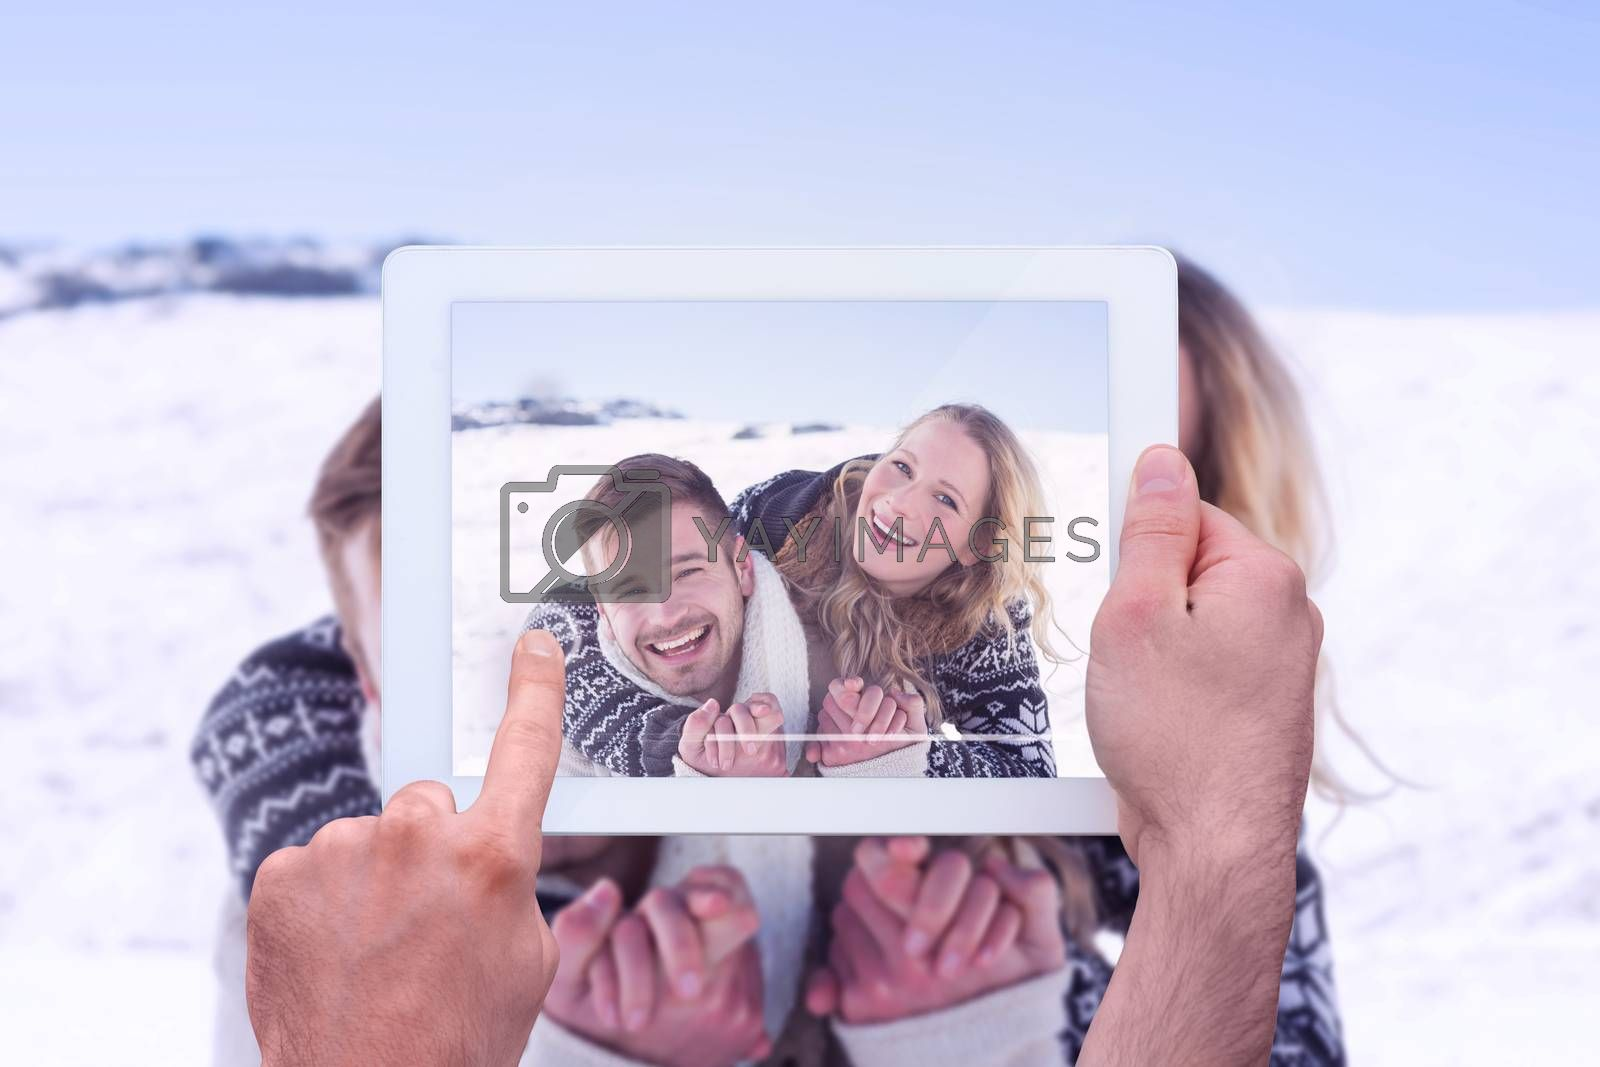 Hand holding tablet pc against close up of a cheerful couple holding hands on snow